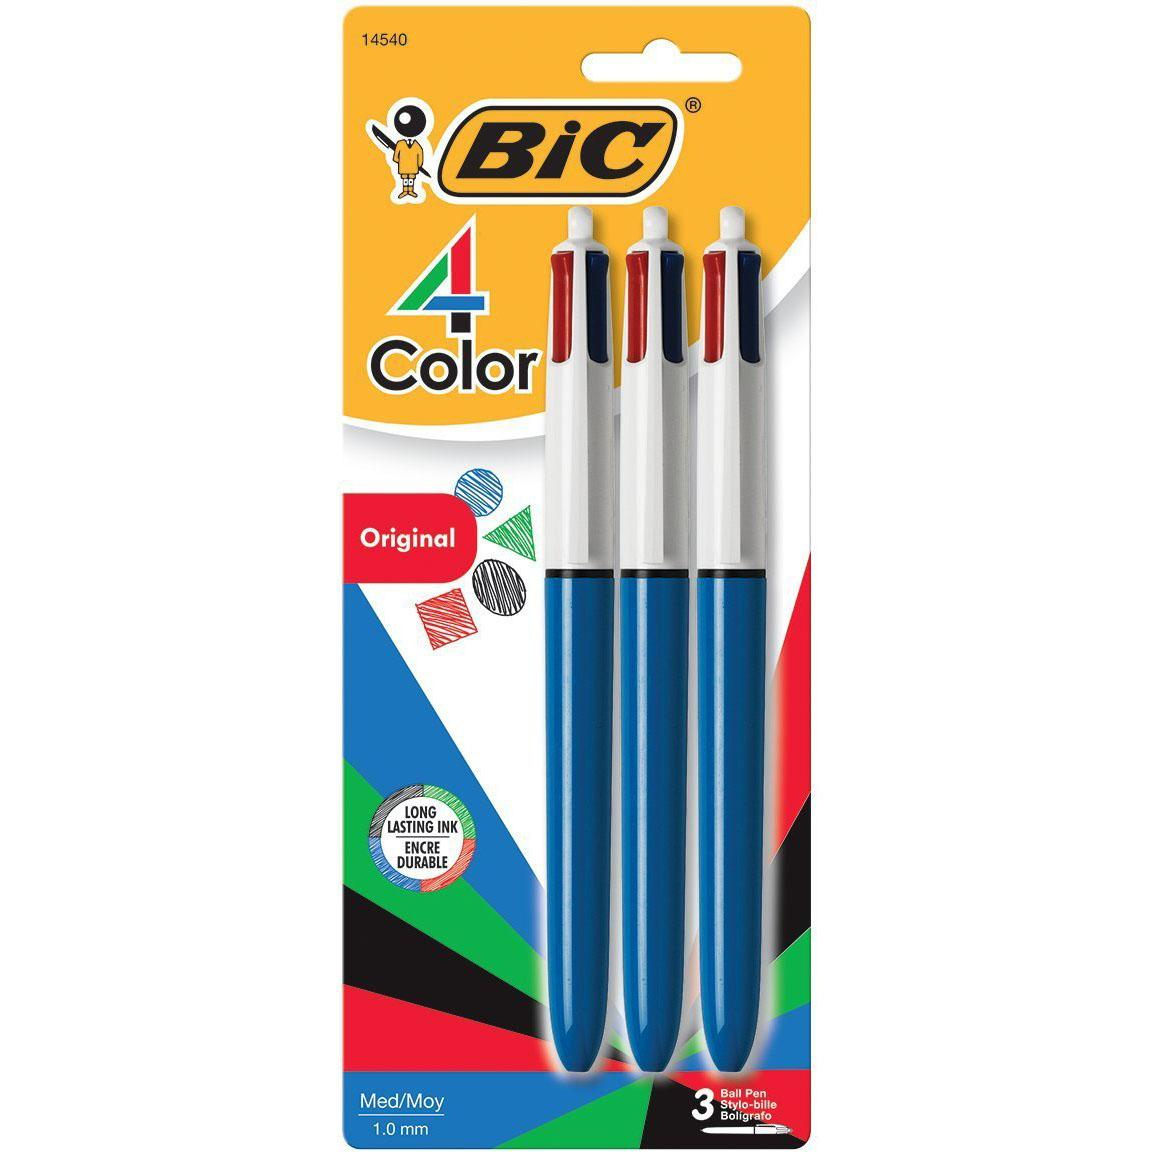 3 Bic 4-Color Ball Pens